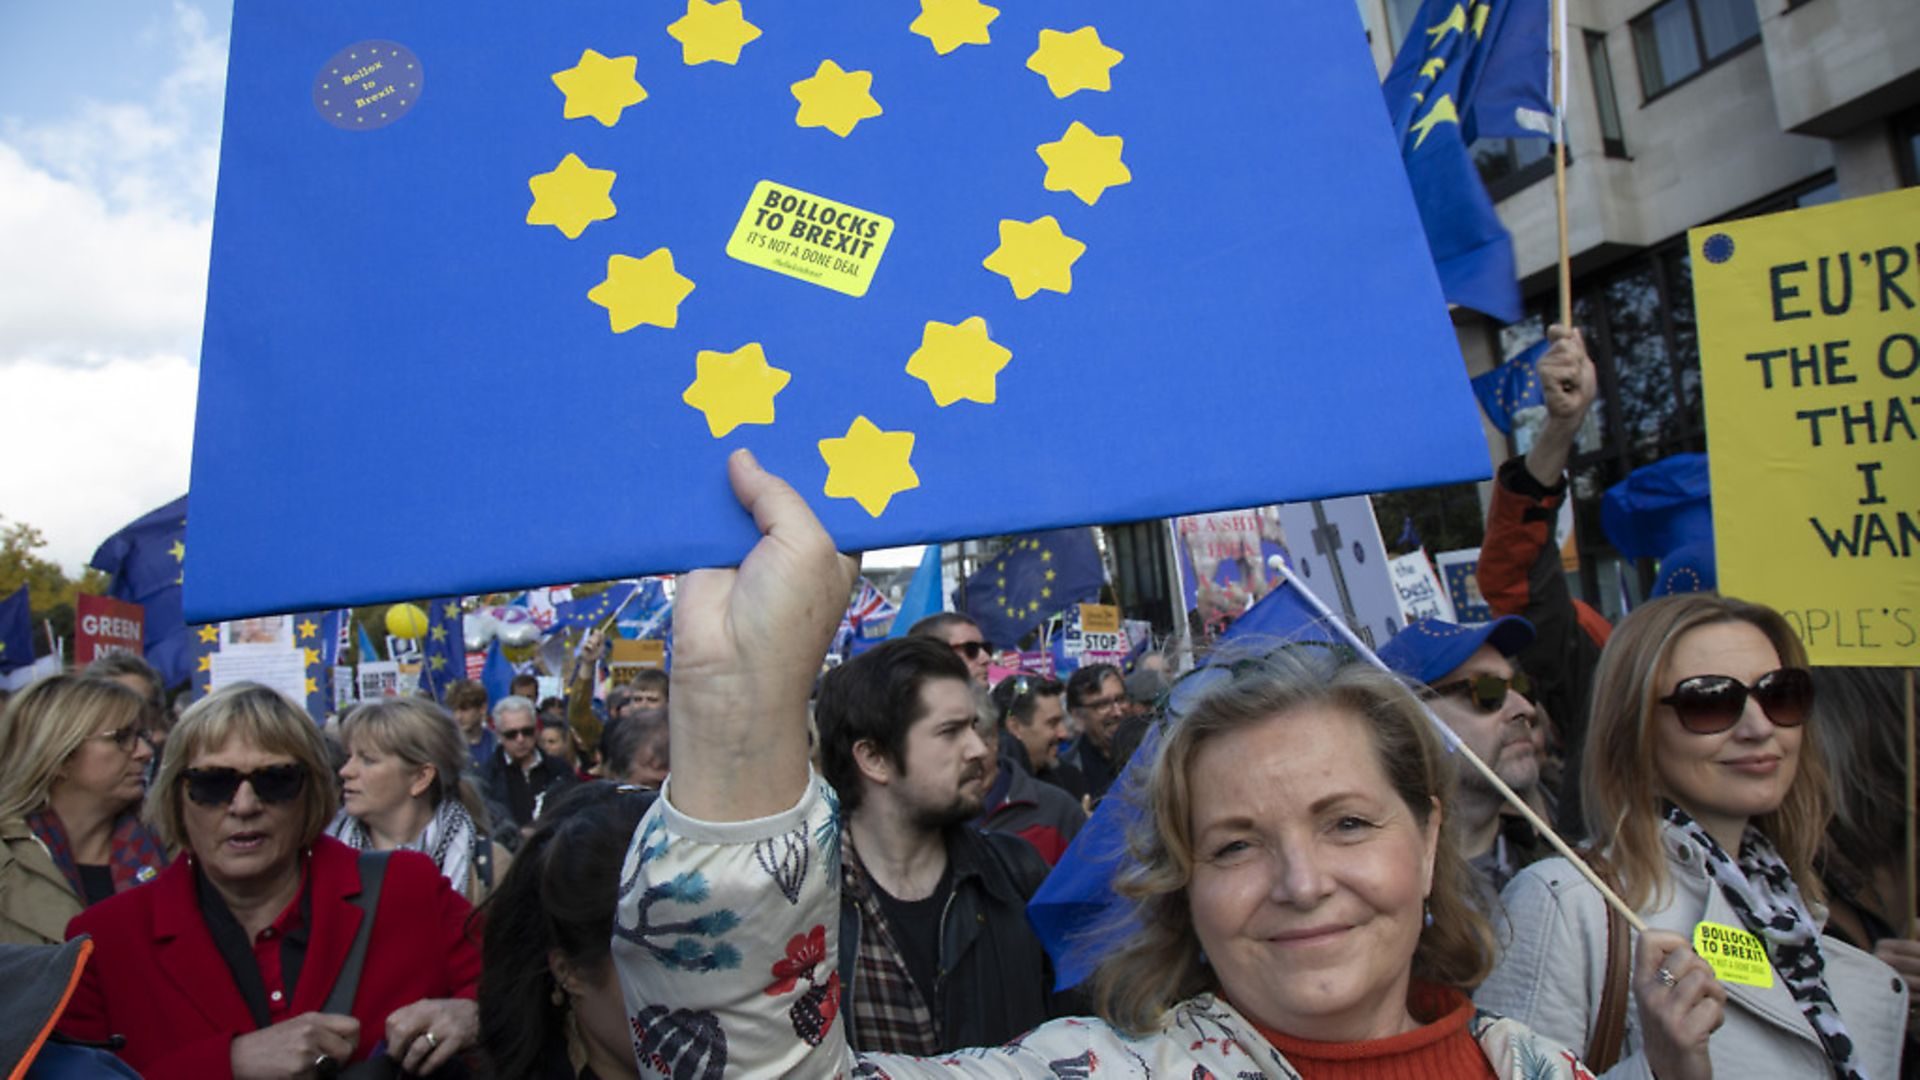 Remainers march against Brexit in London. (Photo by Mike Kemp/In Pictures via Getty Images) - Credit: In Pictures via Getty Images